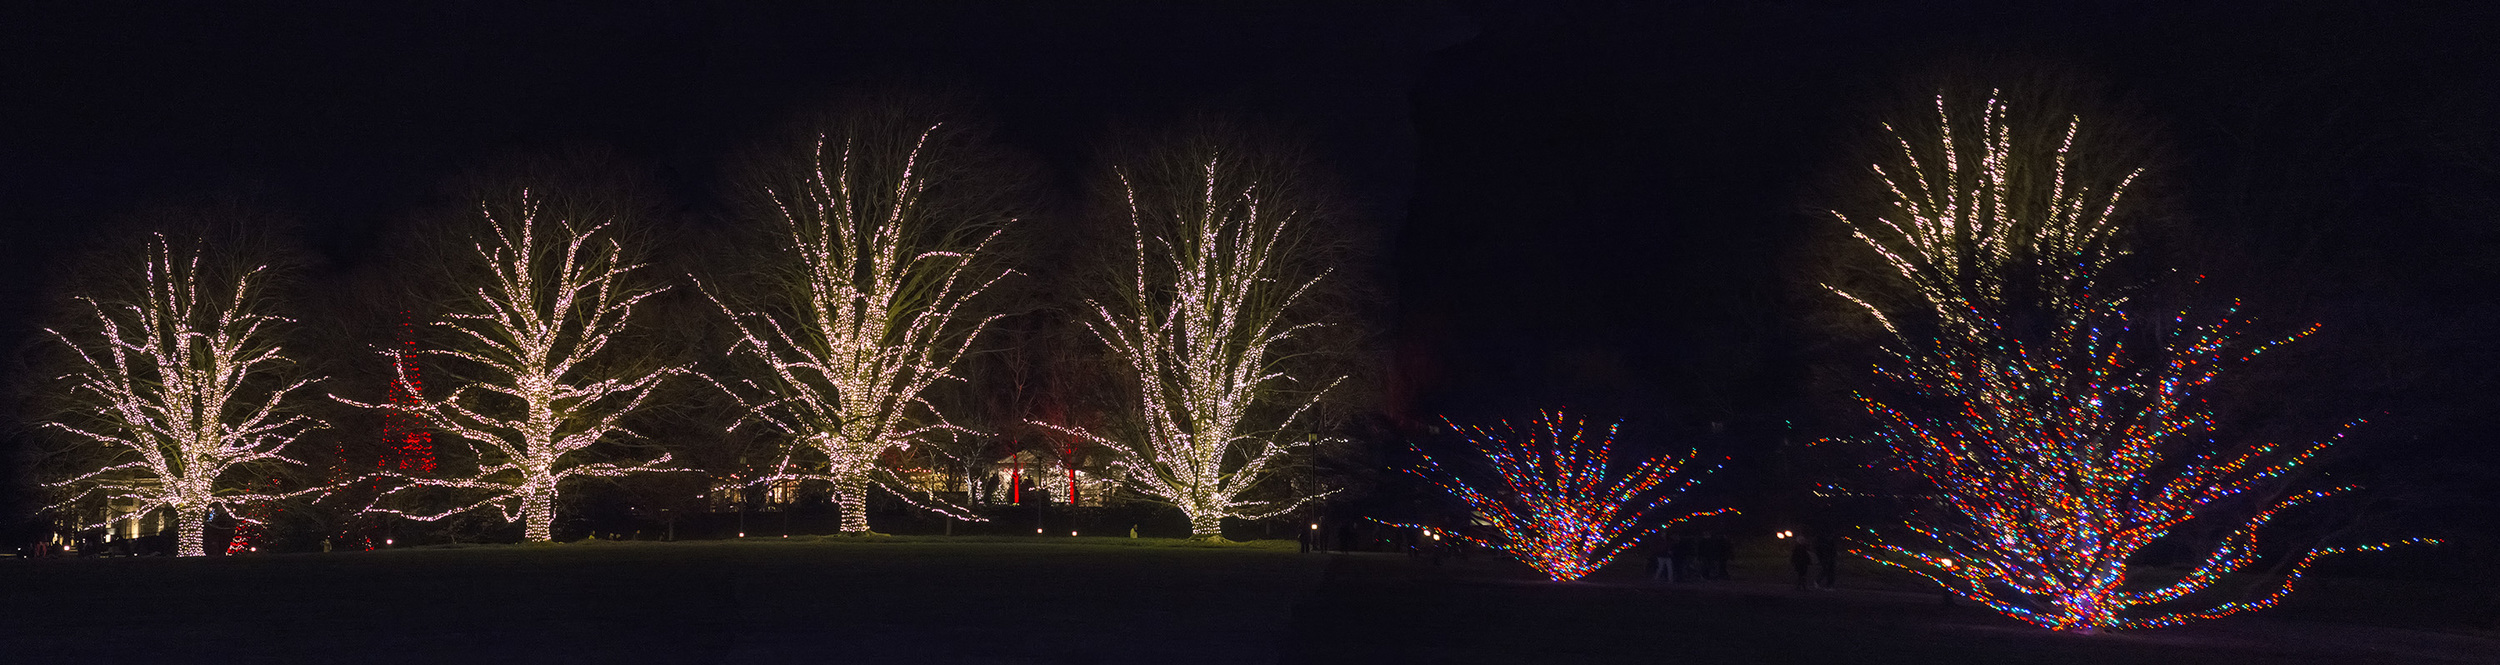 lighted trees at Longwood Gardens